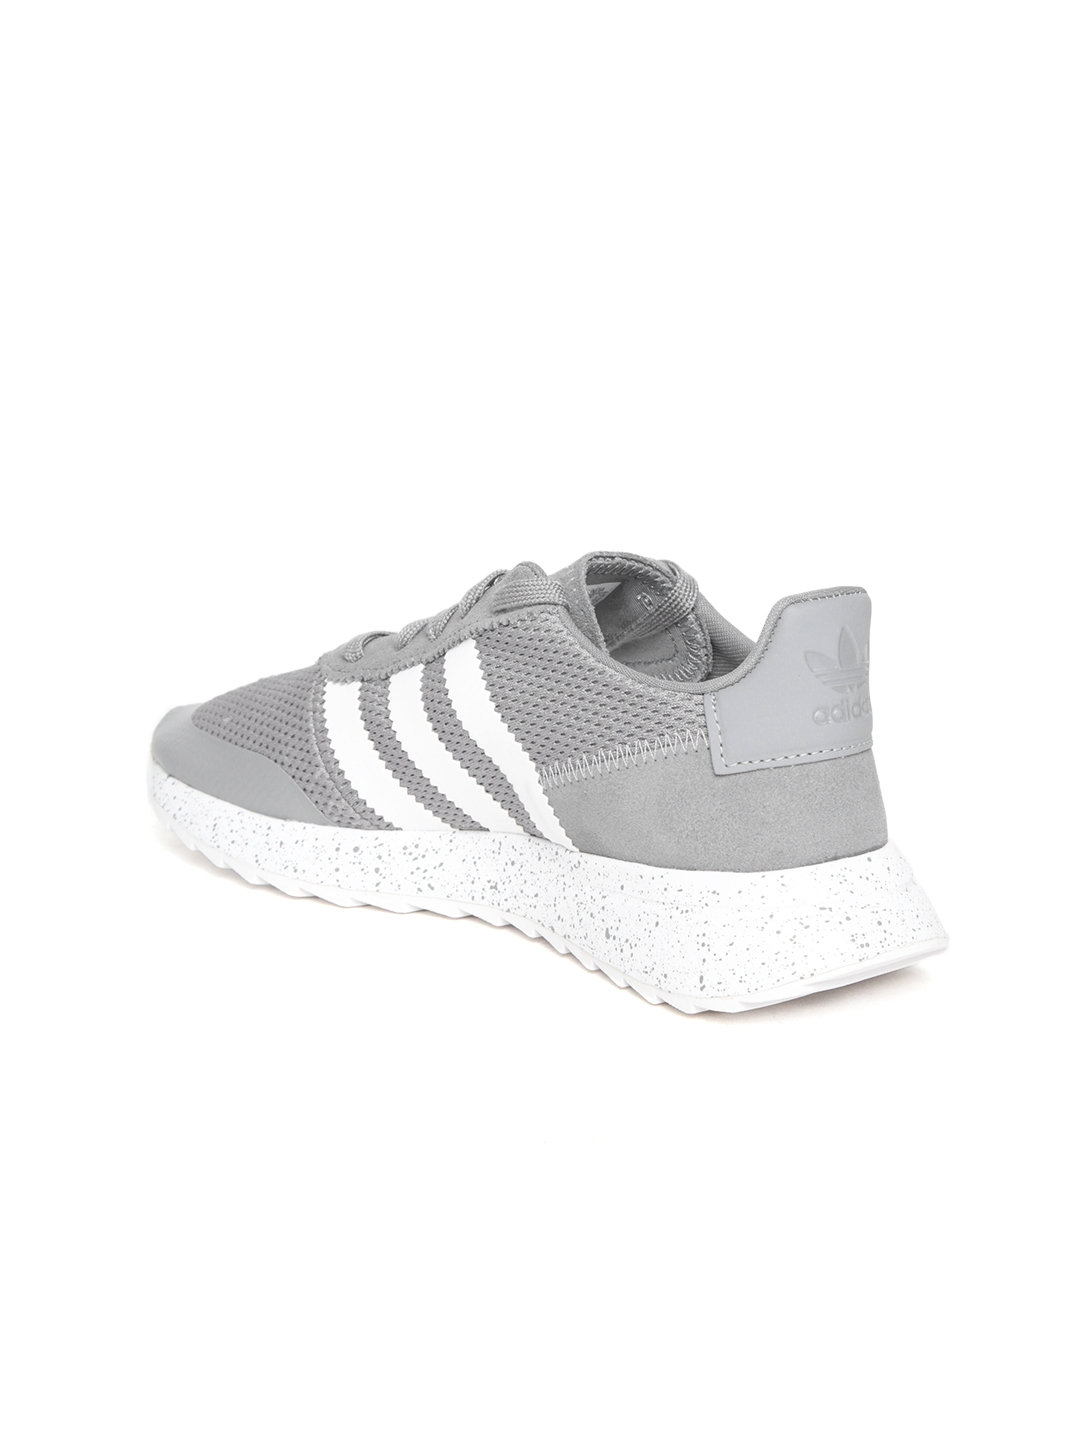 Buy ADIDAS Originals Women FLB RUNNER Leather Sneakers - Casual ... 0ec72885cc